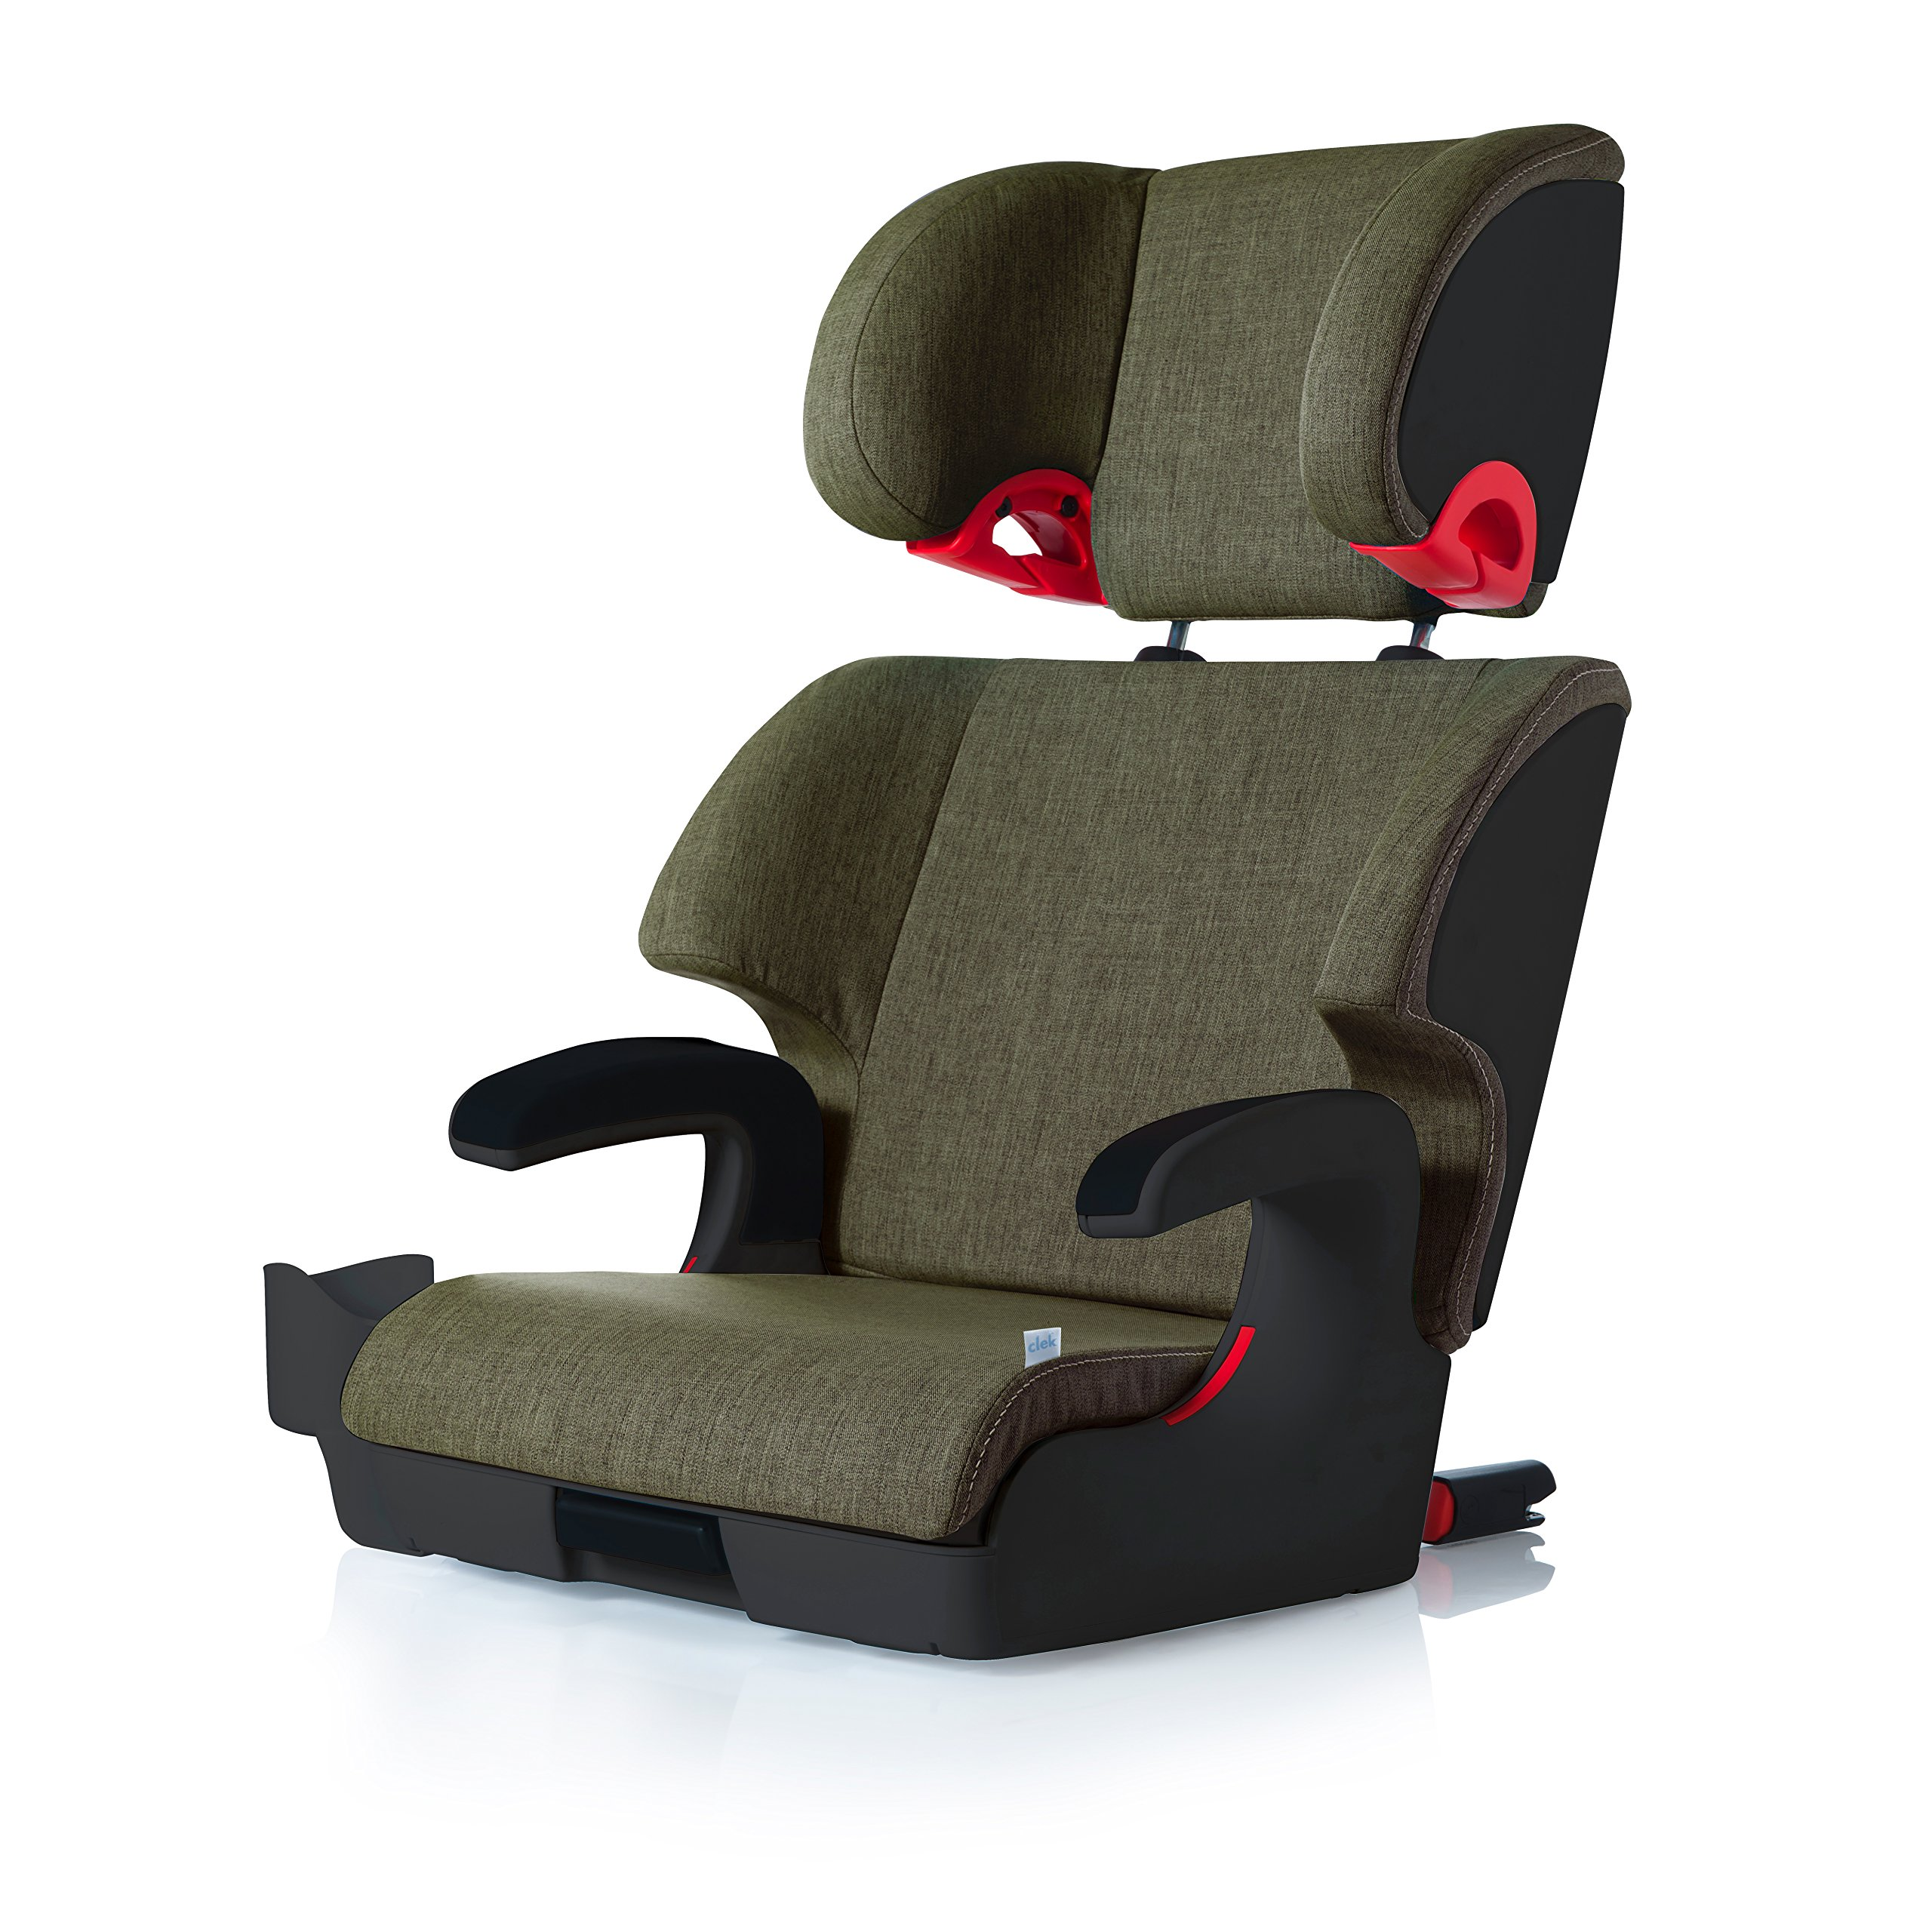 Clek Oobr High Back Booster Car Seat with Recline and Rigid Latch,Woodlands